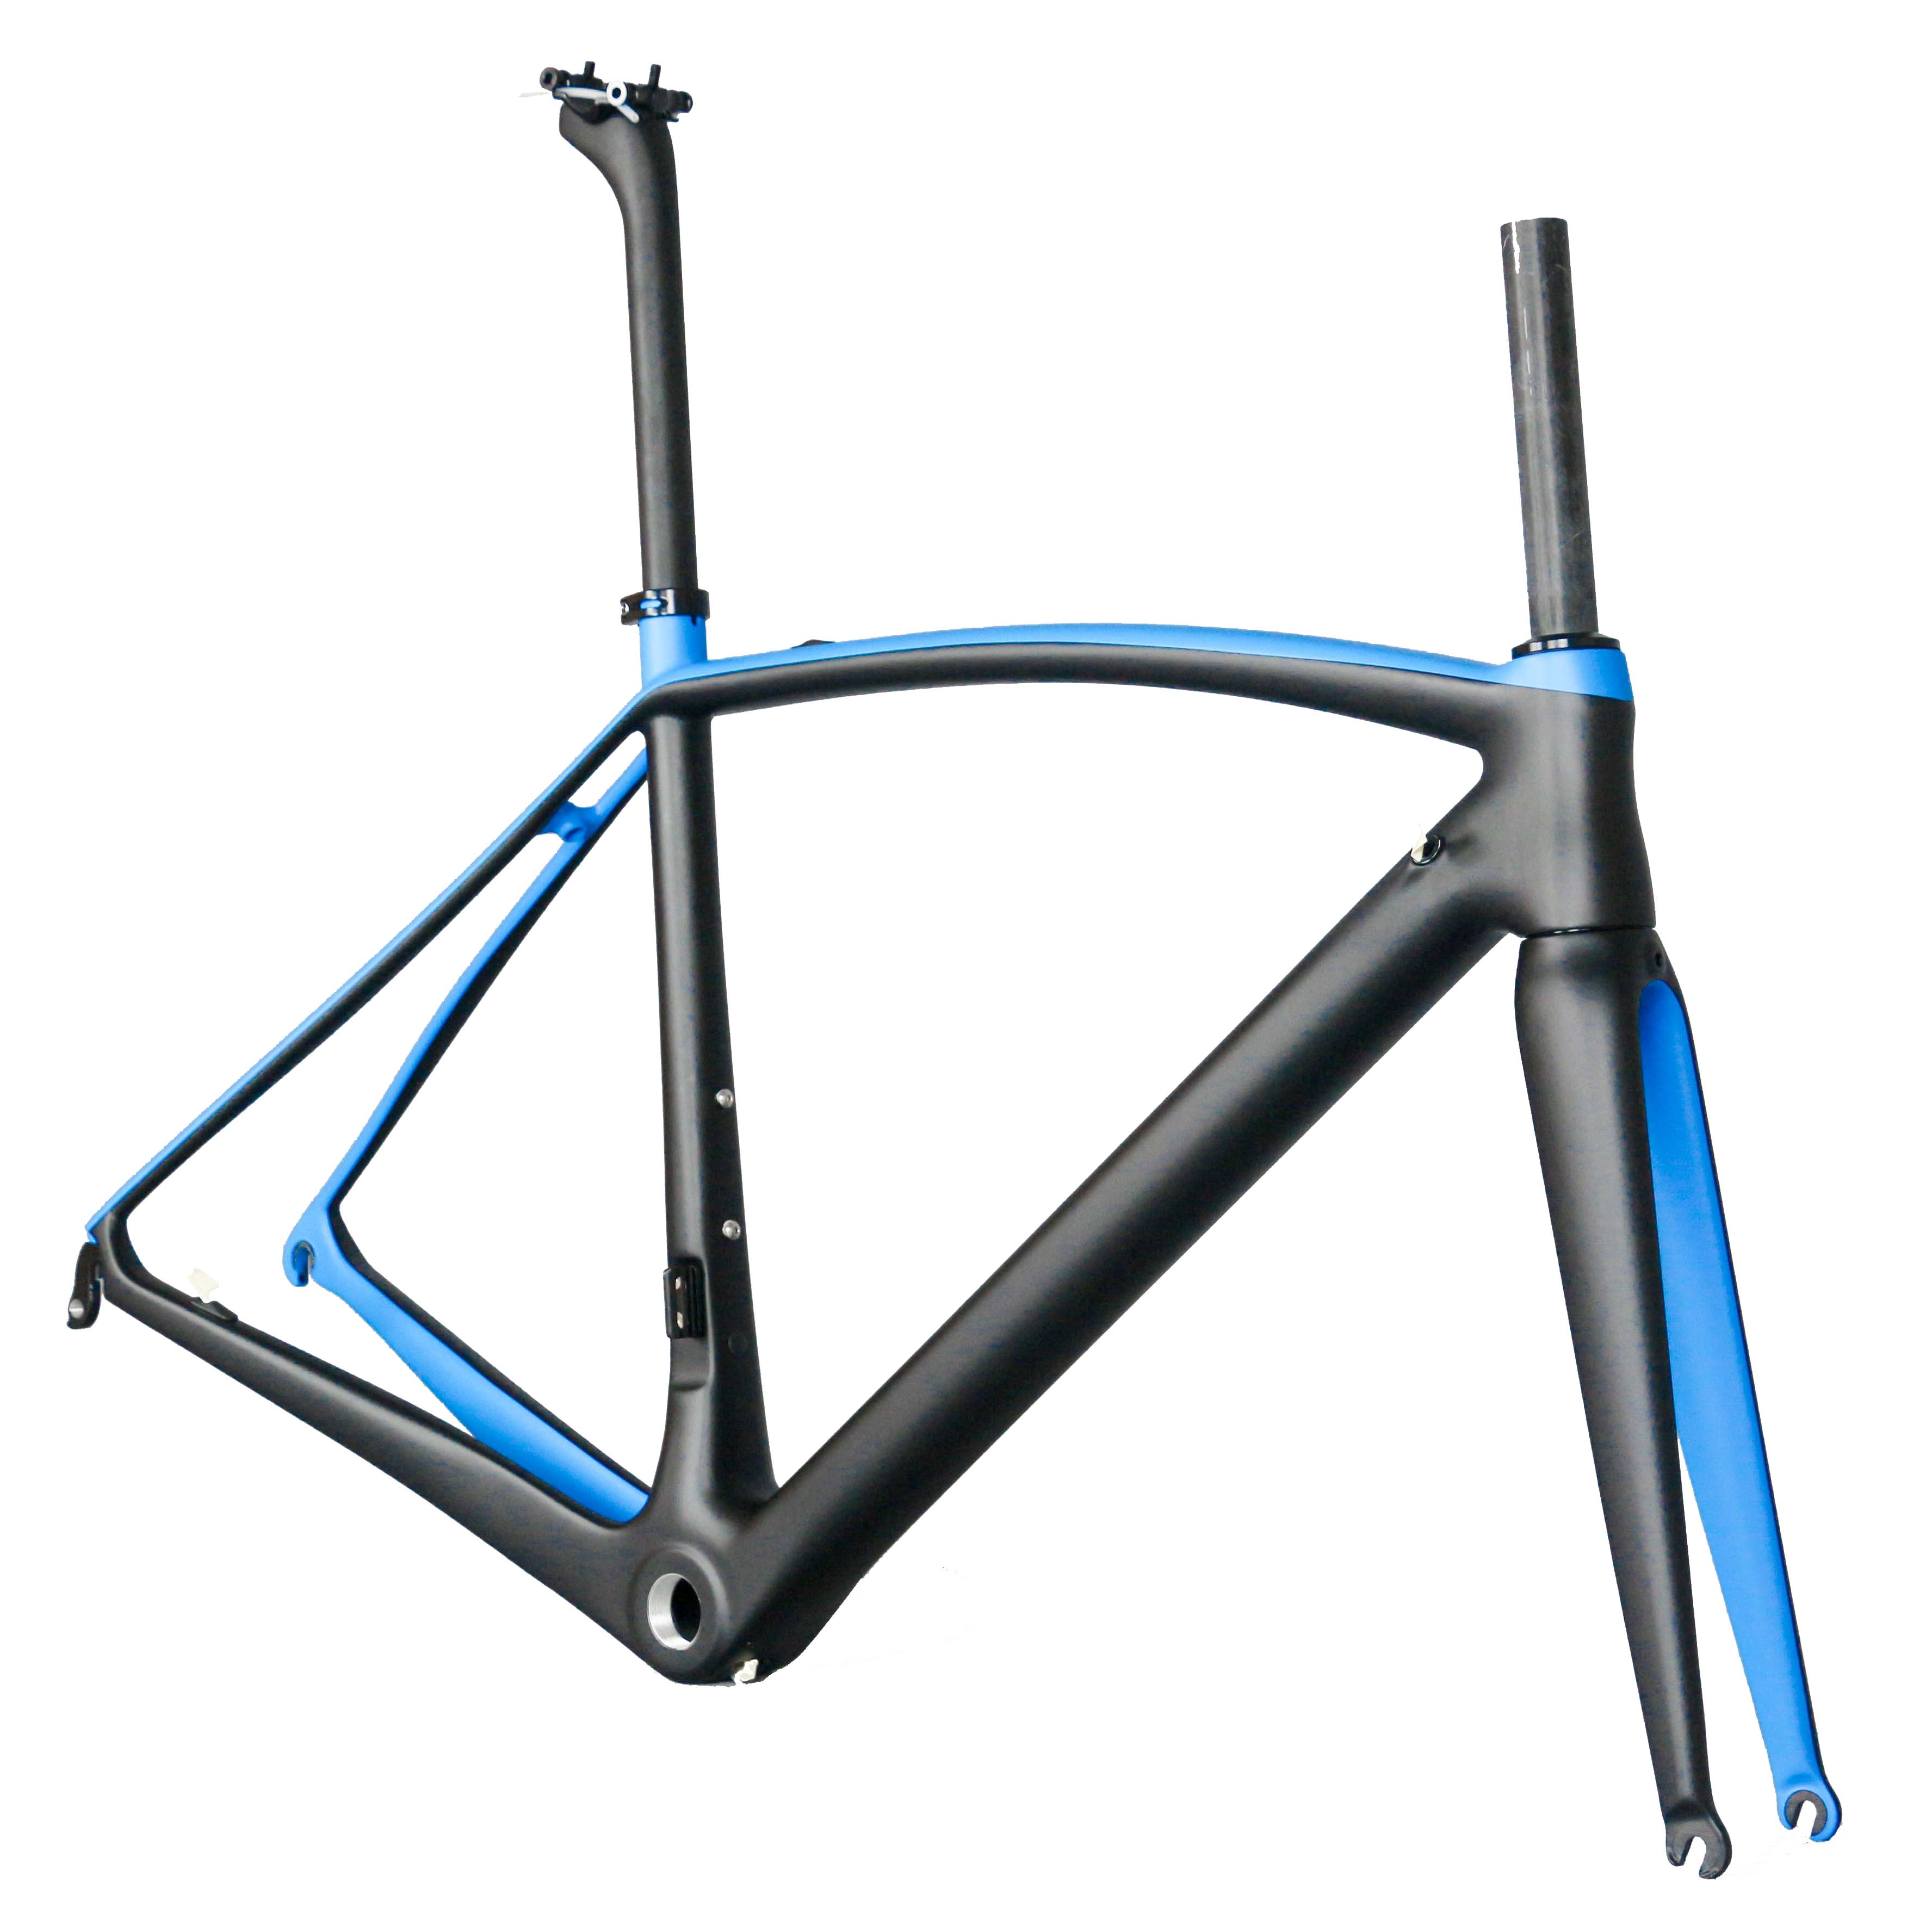 All Internal Cable Normal Brakes Toray T1000 Usding New EPS Technology Carbon Fiber Customization Road Bike Frame FM208